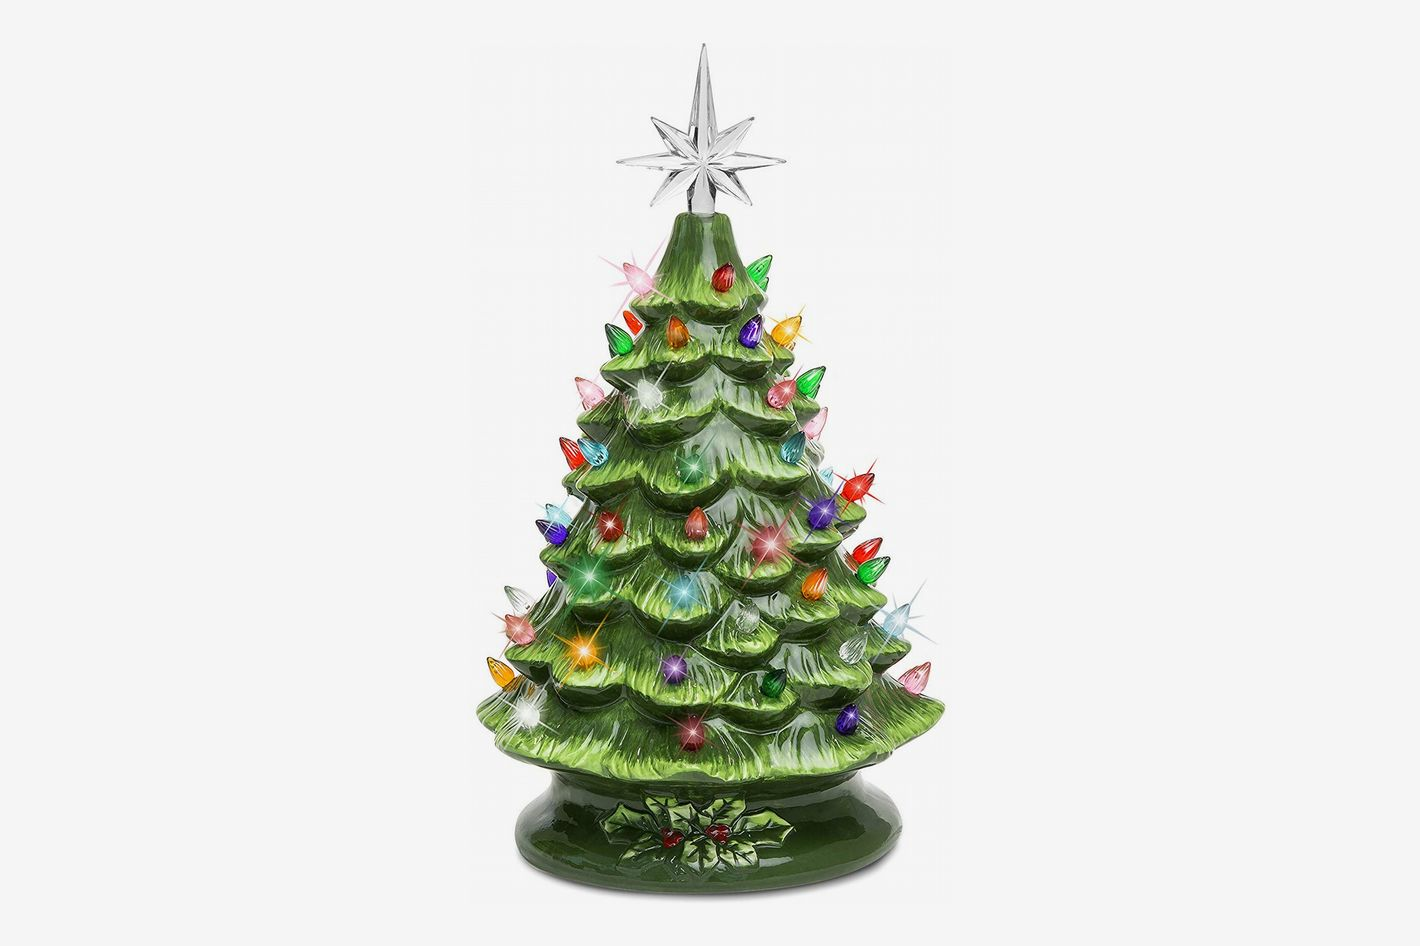 Best Choice Products 15-Inch Prelit Ceramic Tabletop Christmas Tree